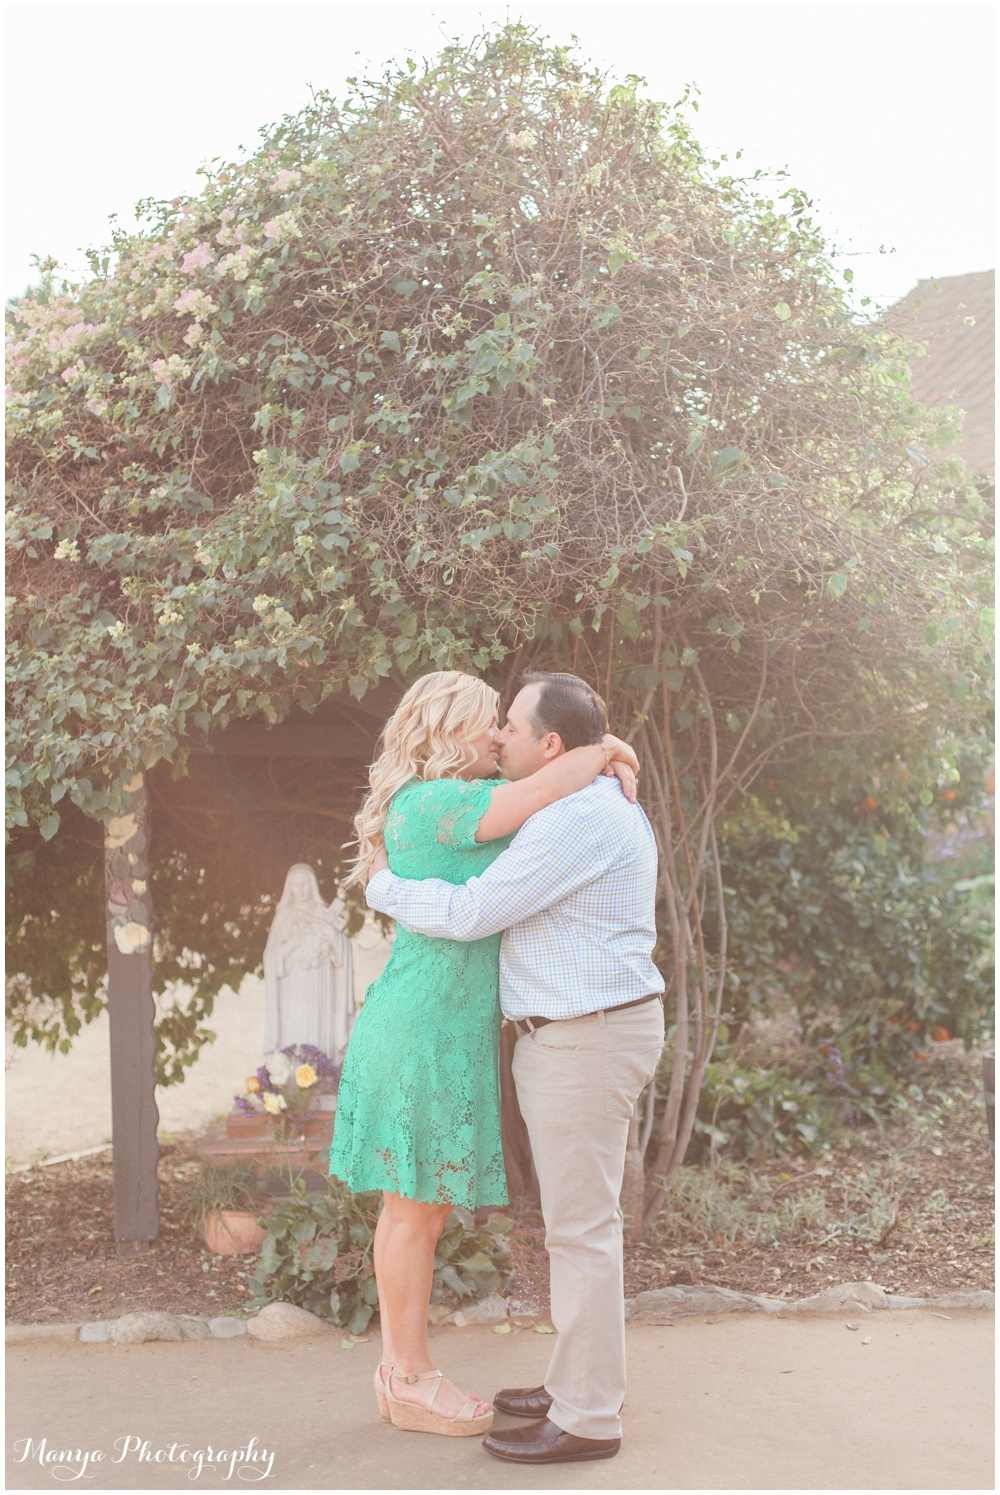 JandK_Engagement_San_Juan_Capistrano_Mission_Orange_County_Photographer_Manya_Photography__0001